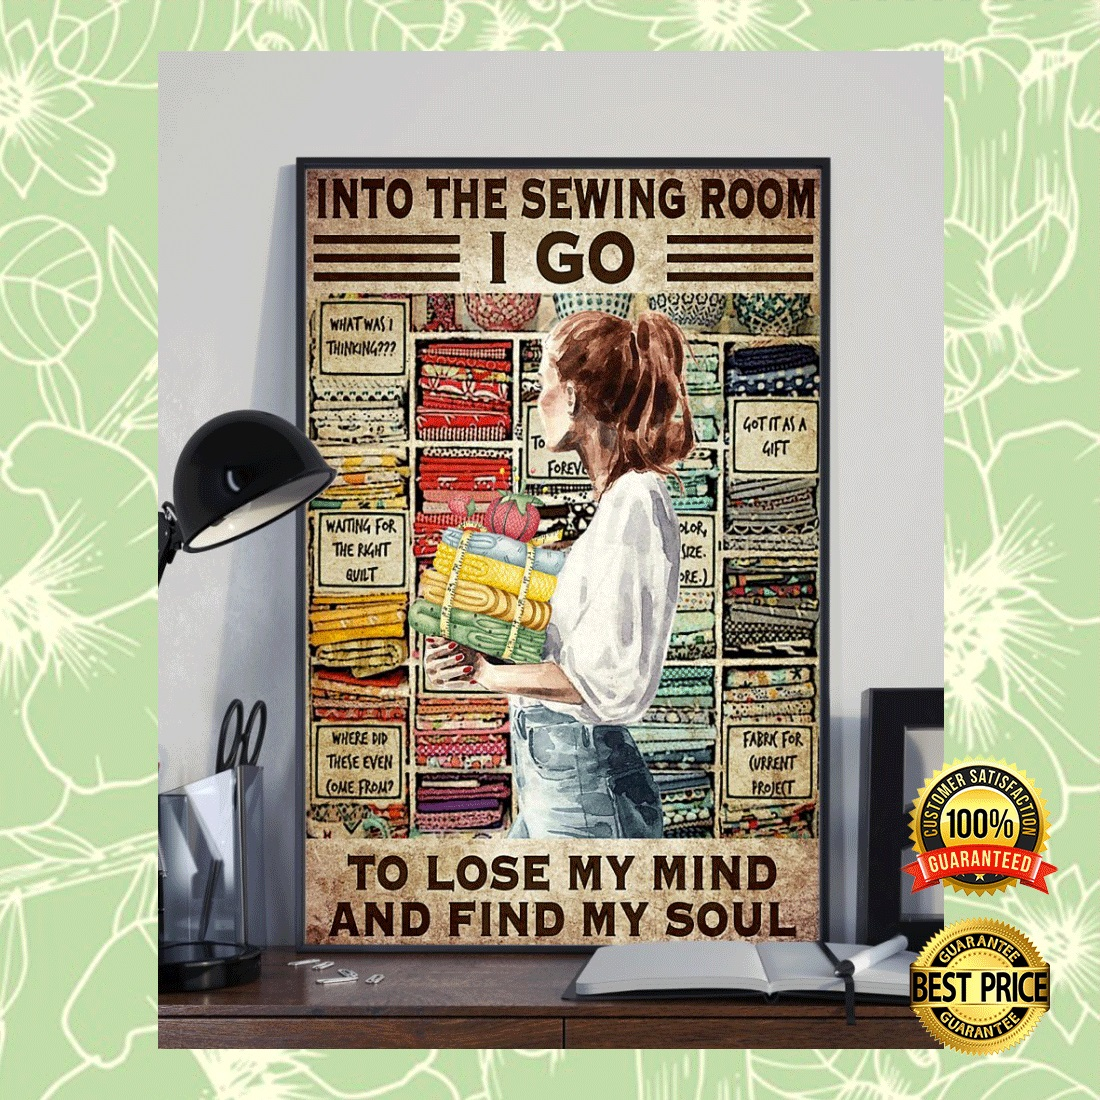 INTO THE SEWING ROOM I GO TO LOSE MY MIND AND FIND MY SOUL POSTER 4